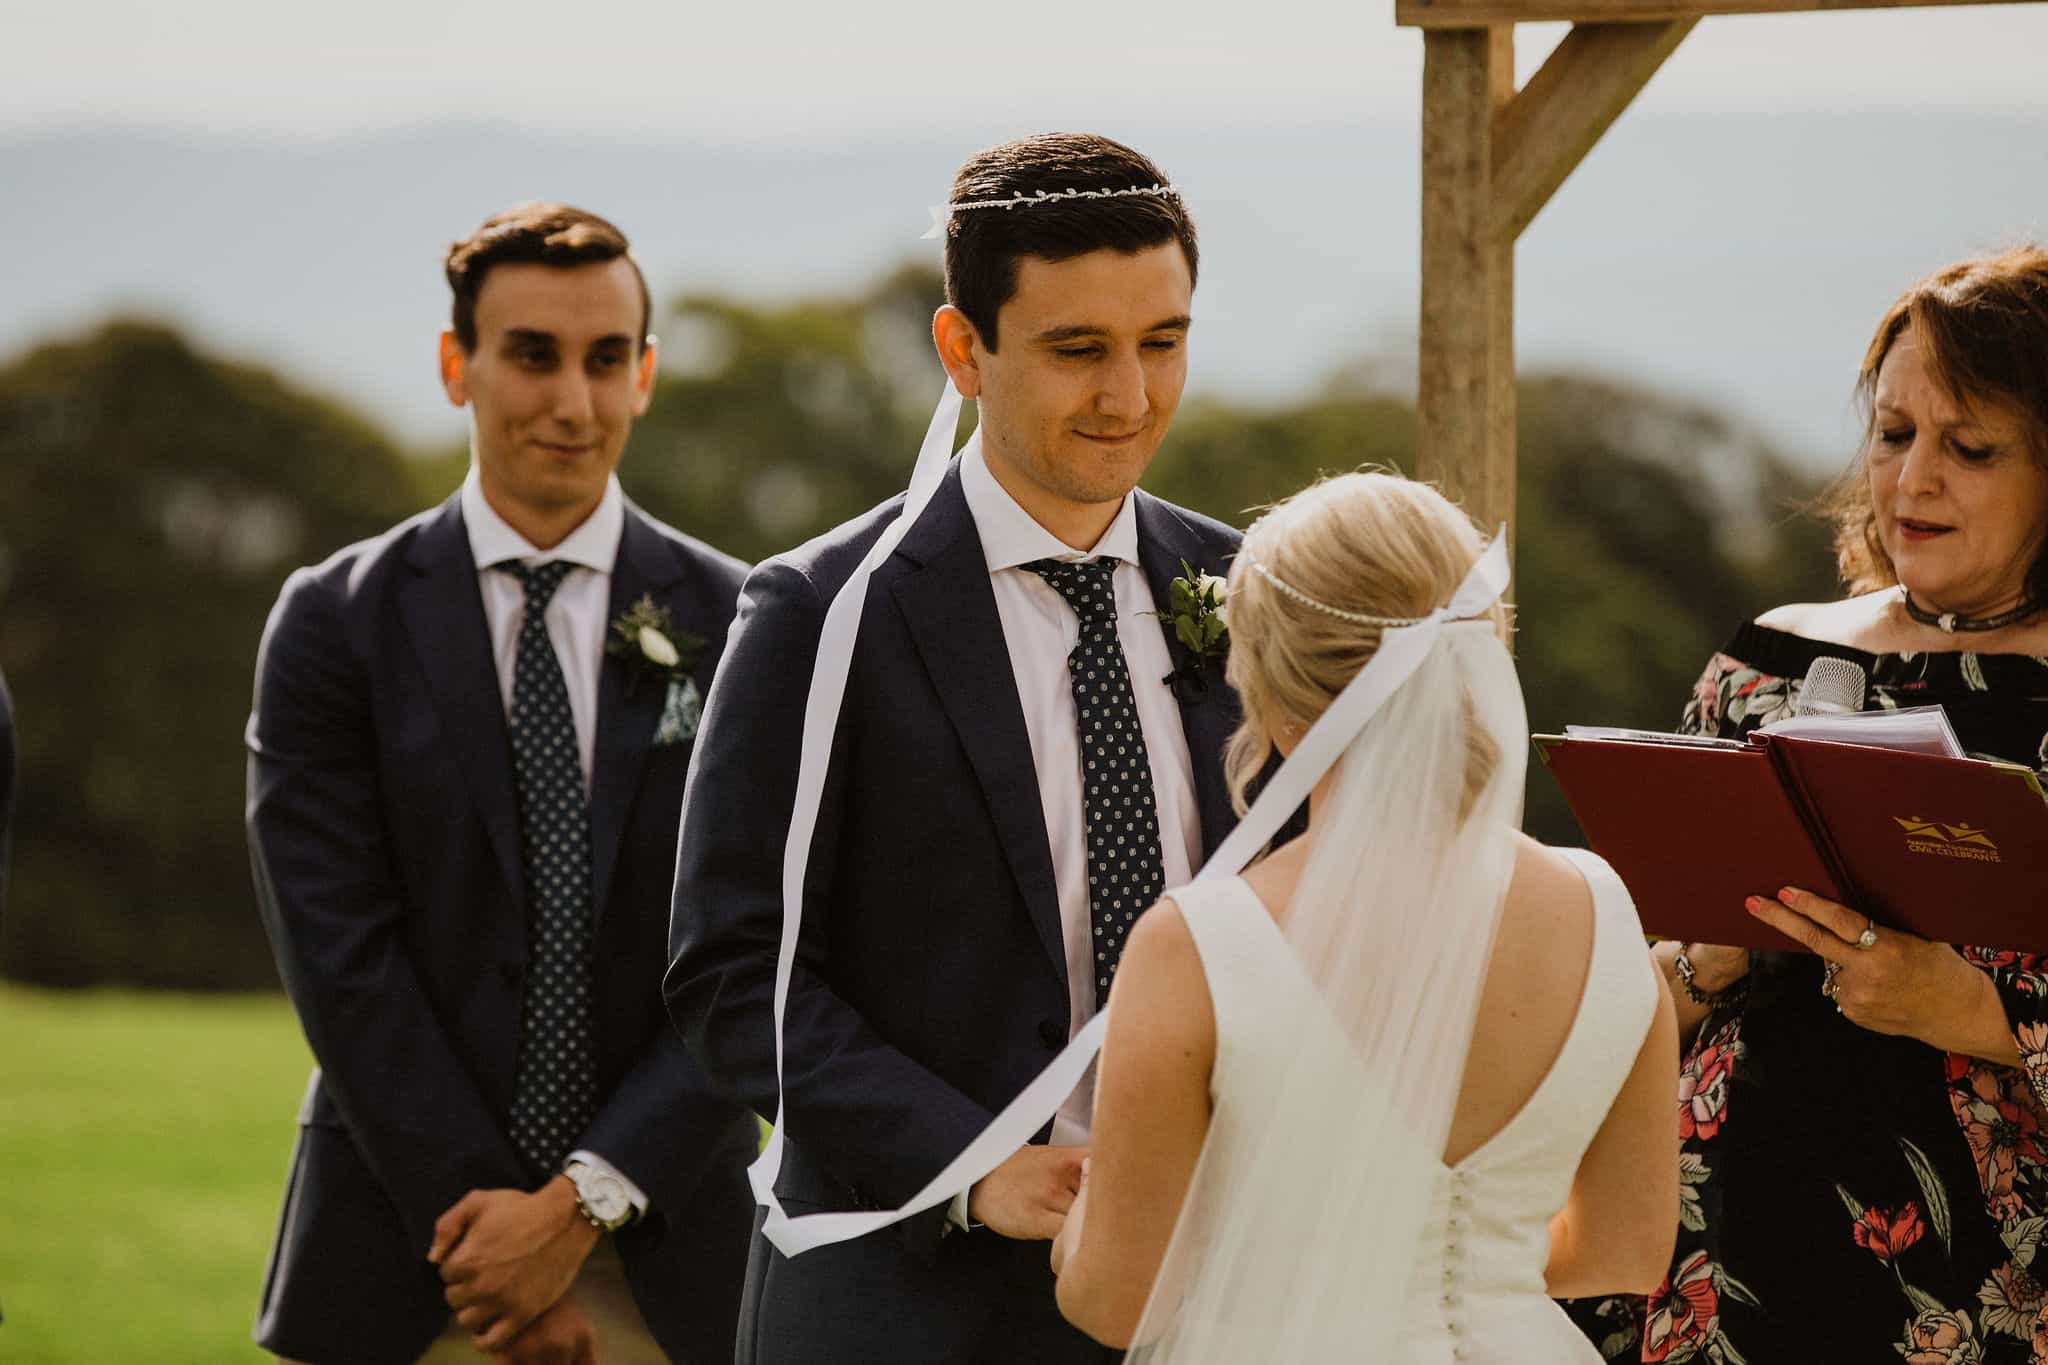 Rebecca and Dean incorporated Greek Orthodox traditions into their wedding ceremony